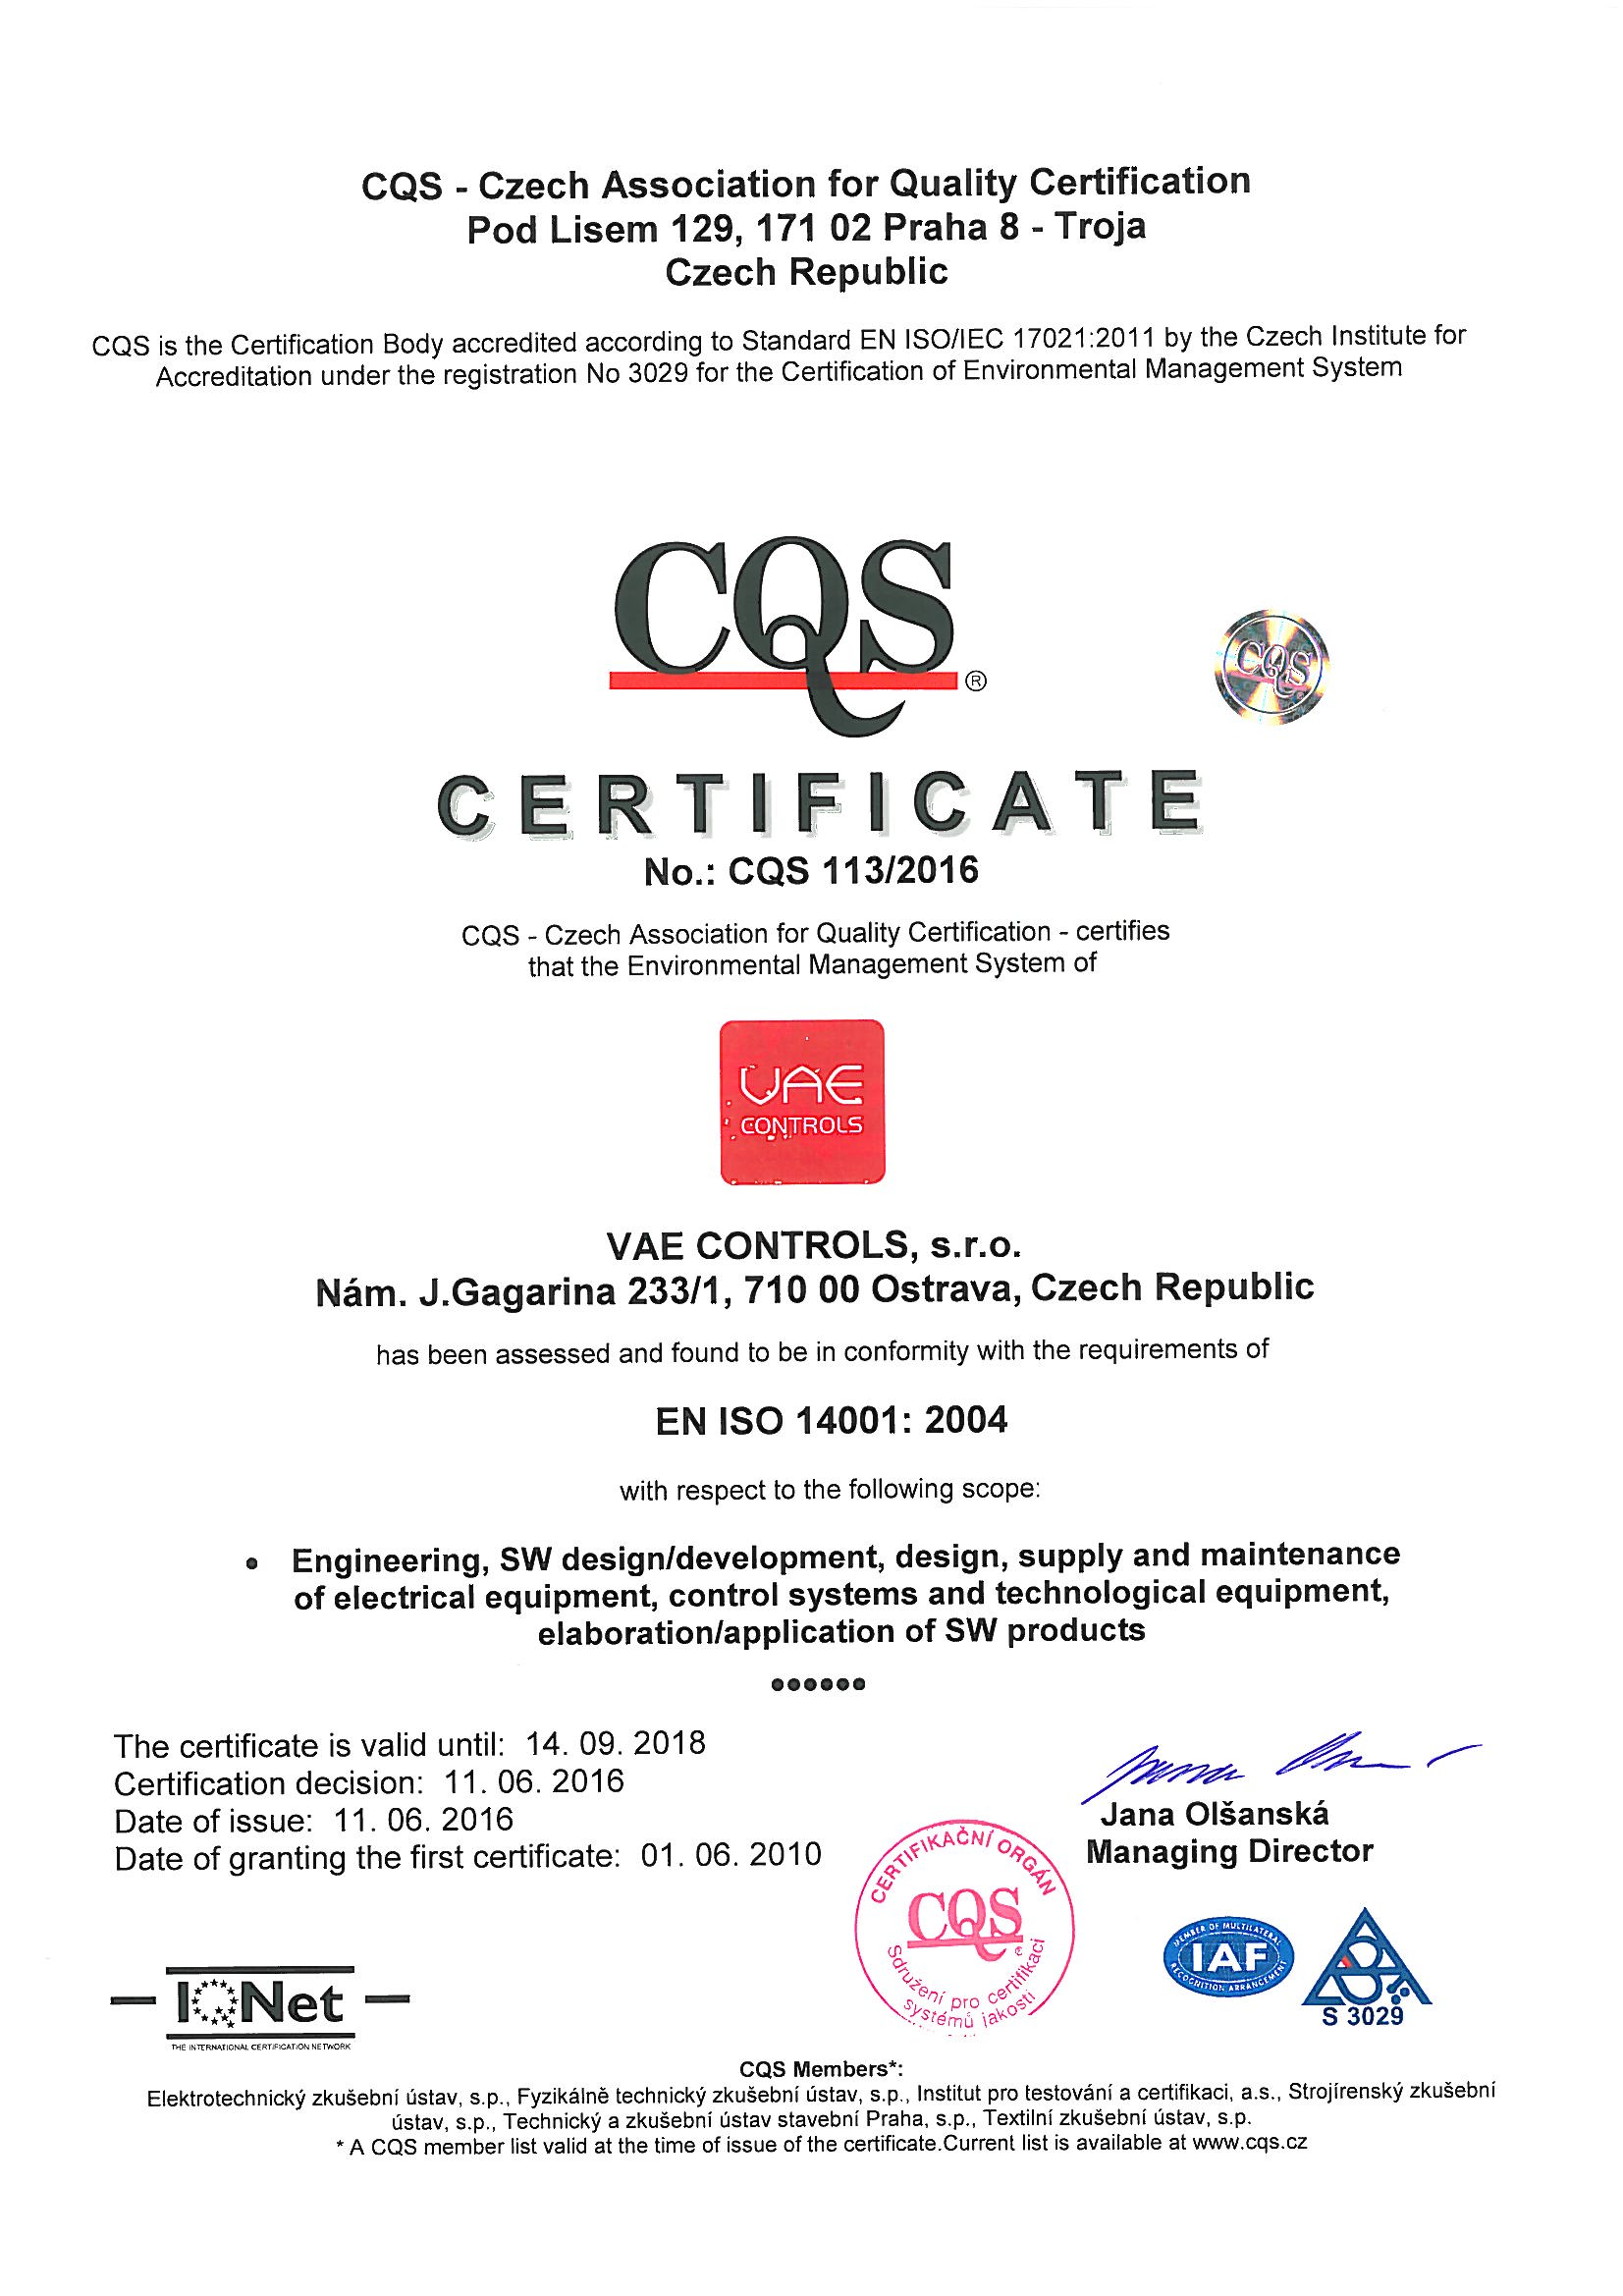 iso 14001 certification validity period